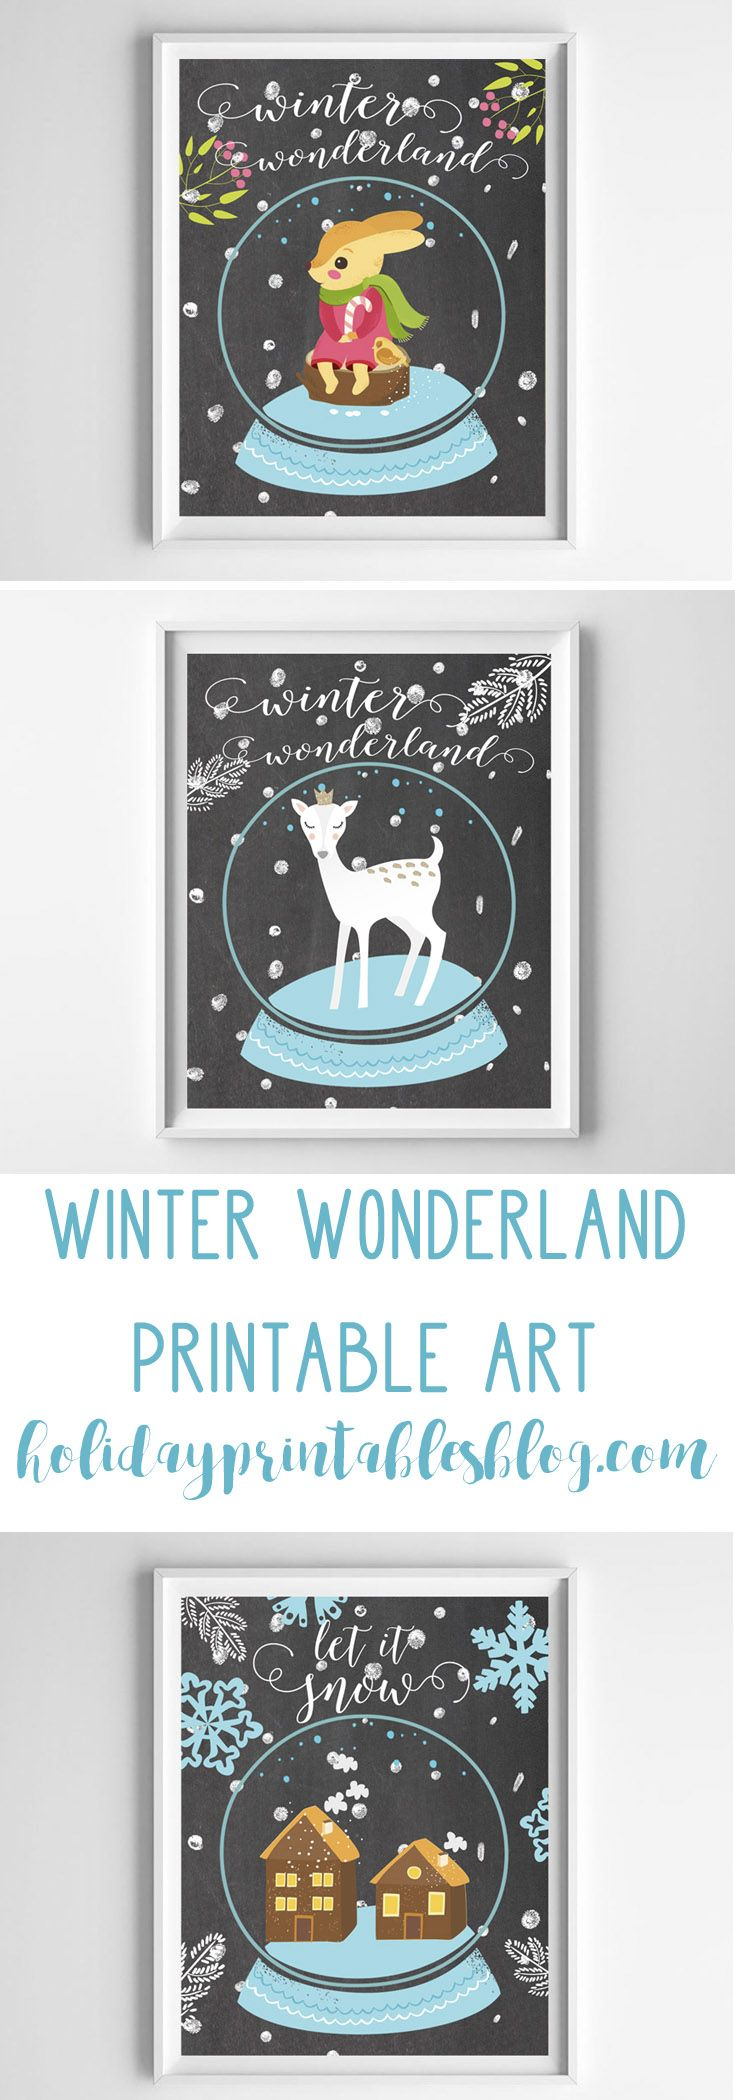 67 best Holiday Printables Blog Images images on Pinterest ...